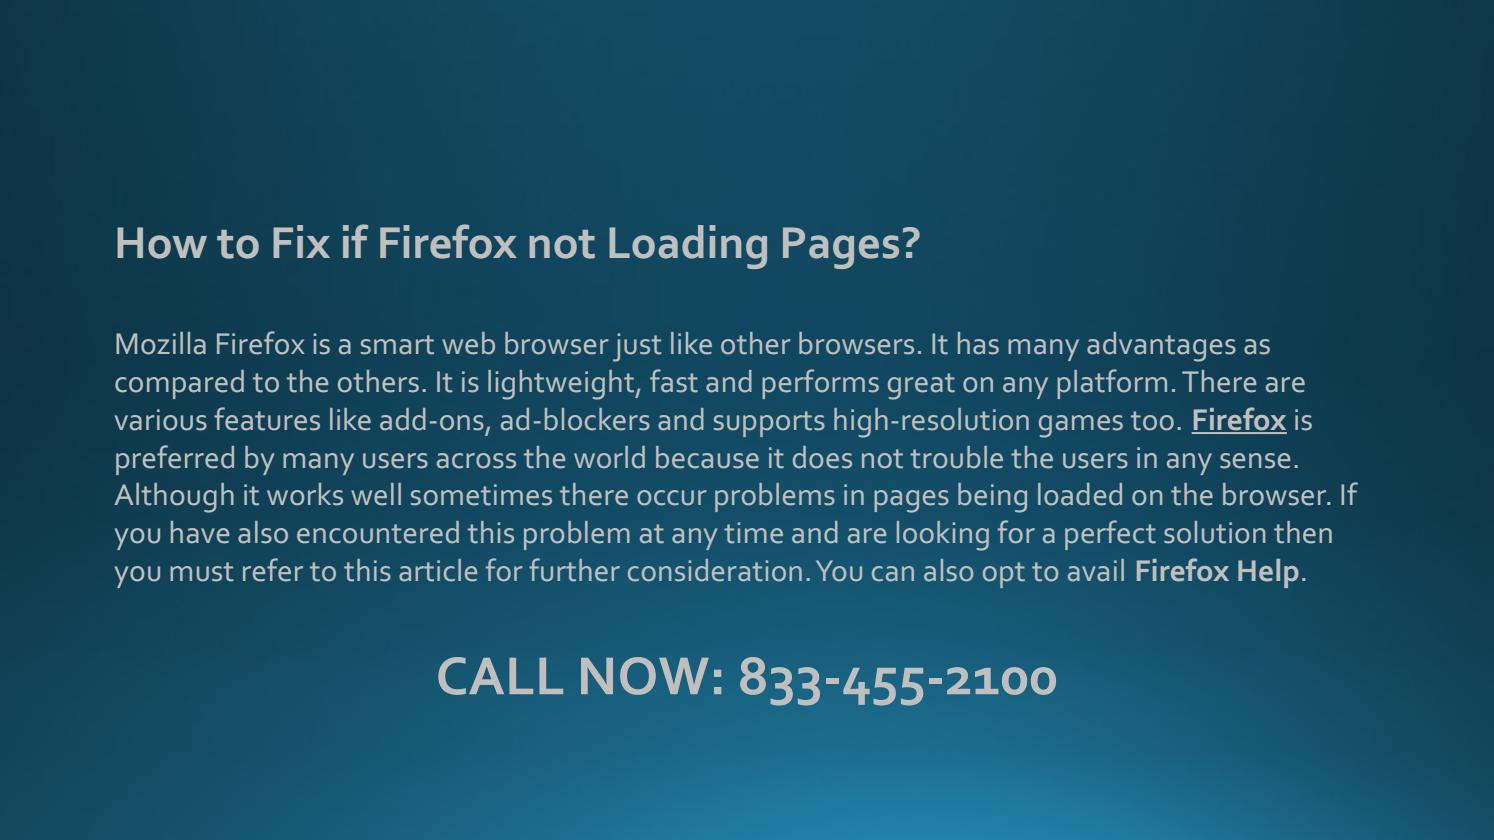 1-833-455-2100 How to Fix if Firefox not Loading Pages? by